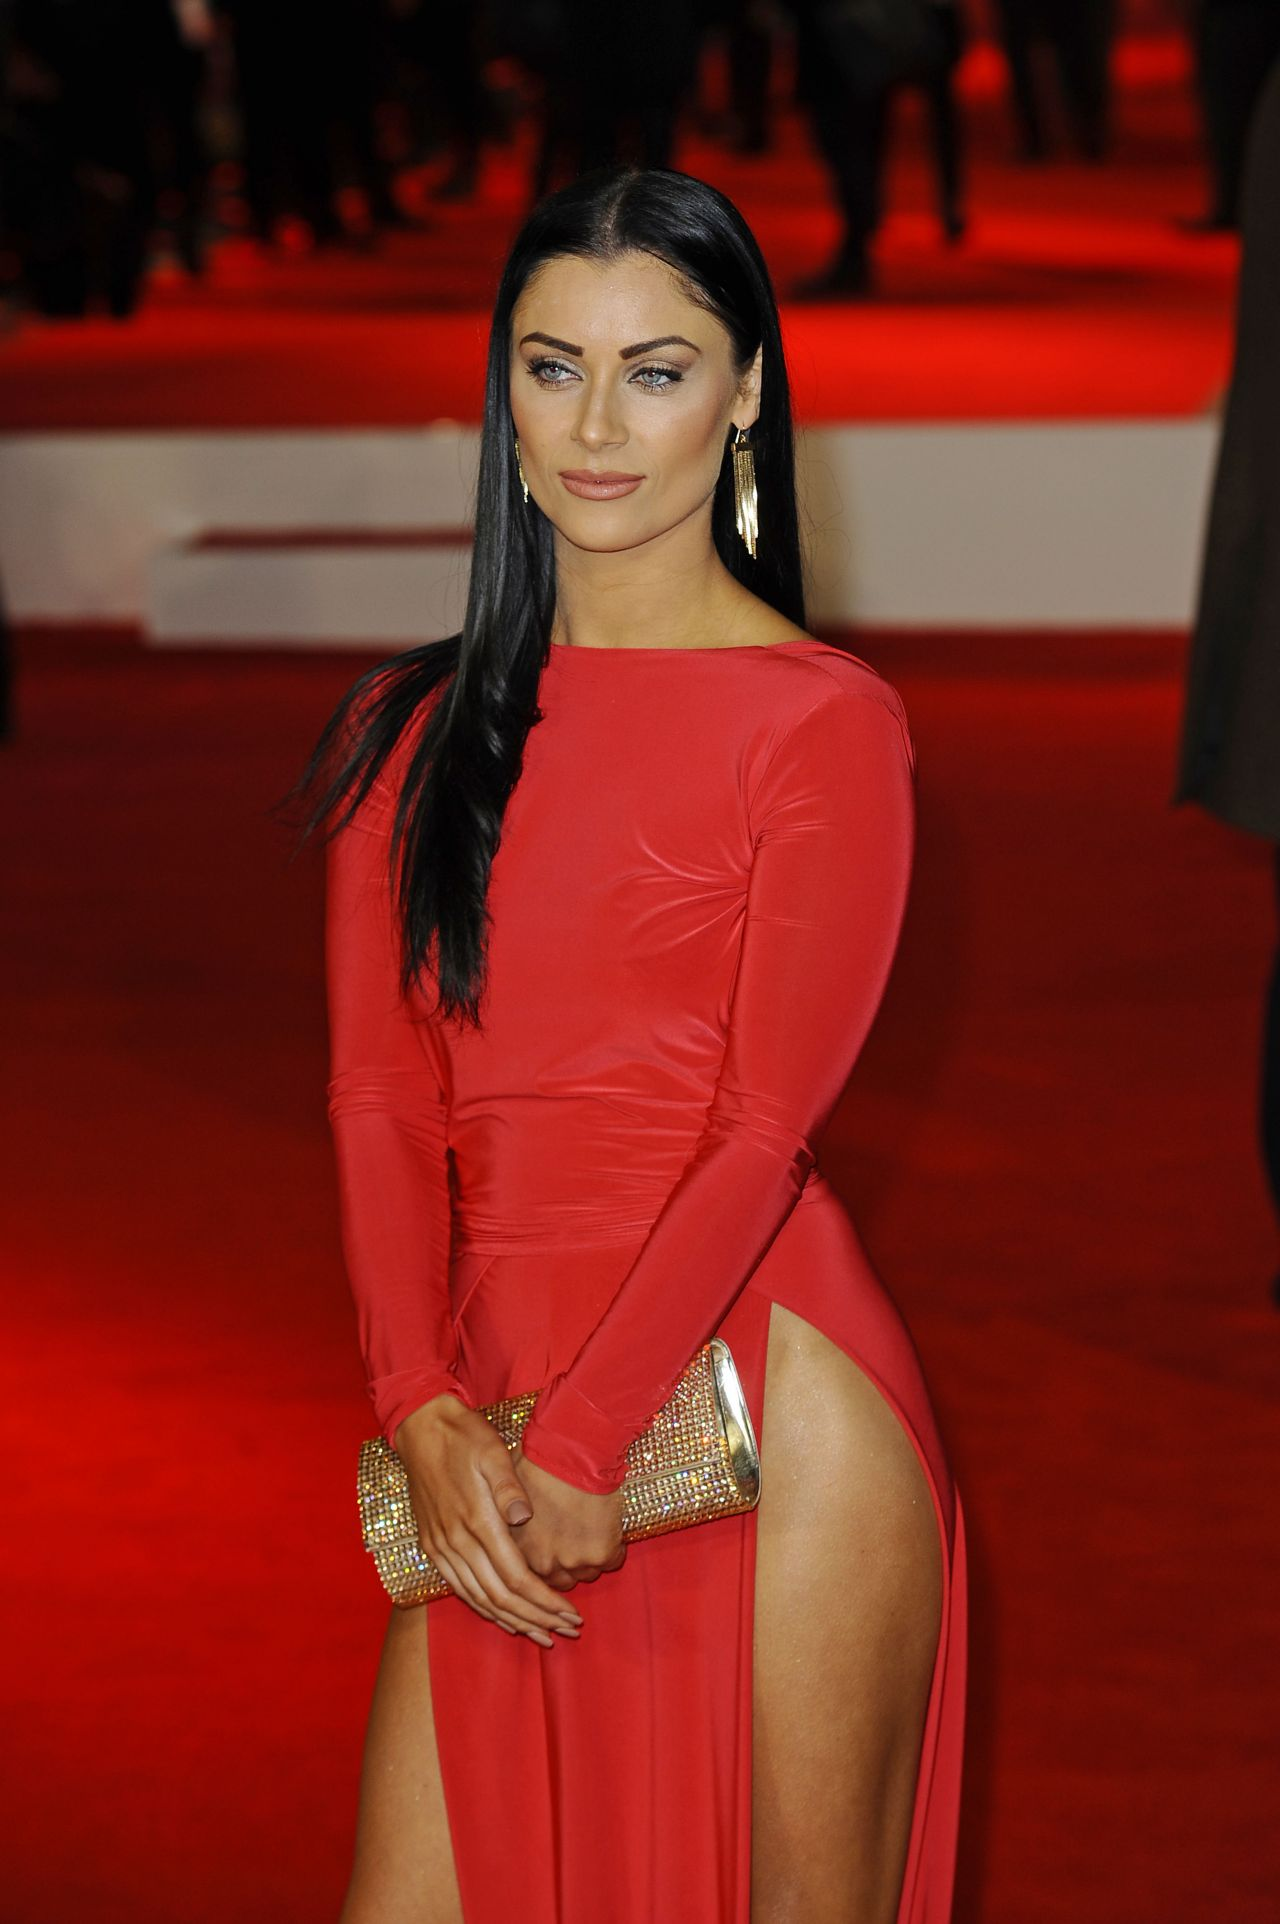 Cally Jane Beech naked (42 photos), Topless, Fappening, Feet, braless 2006